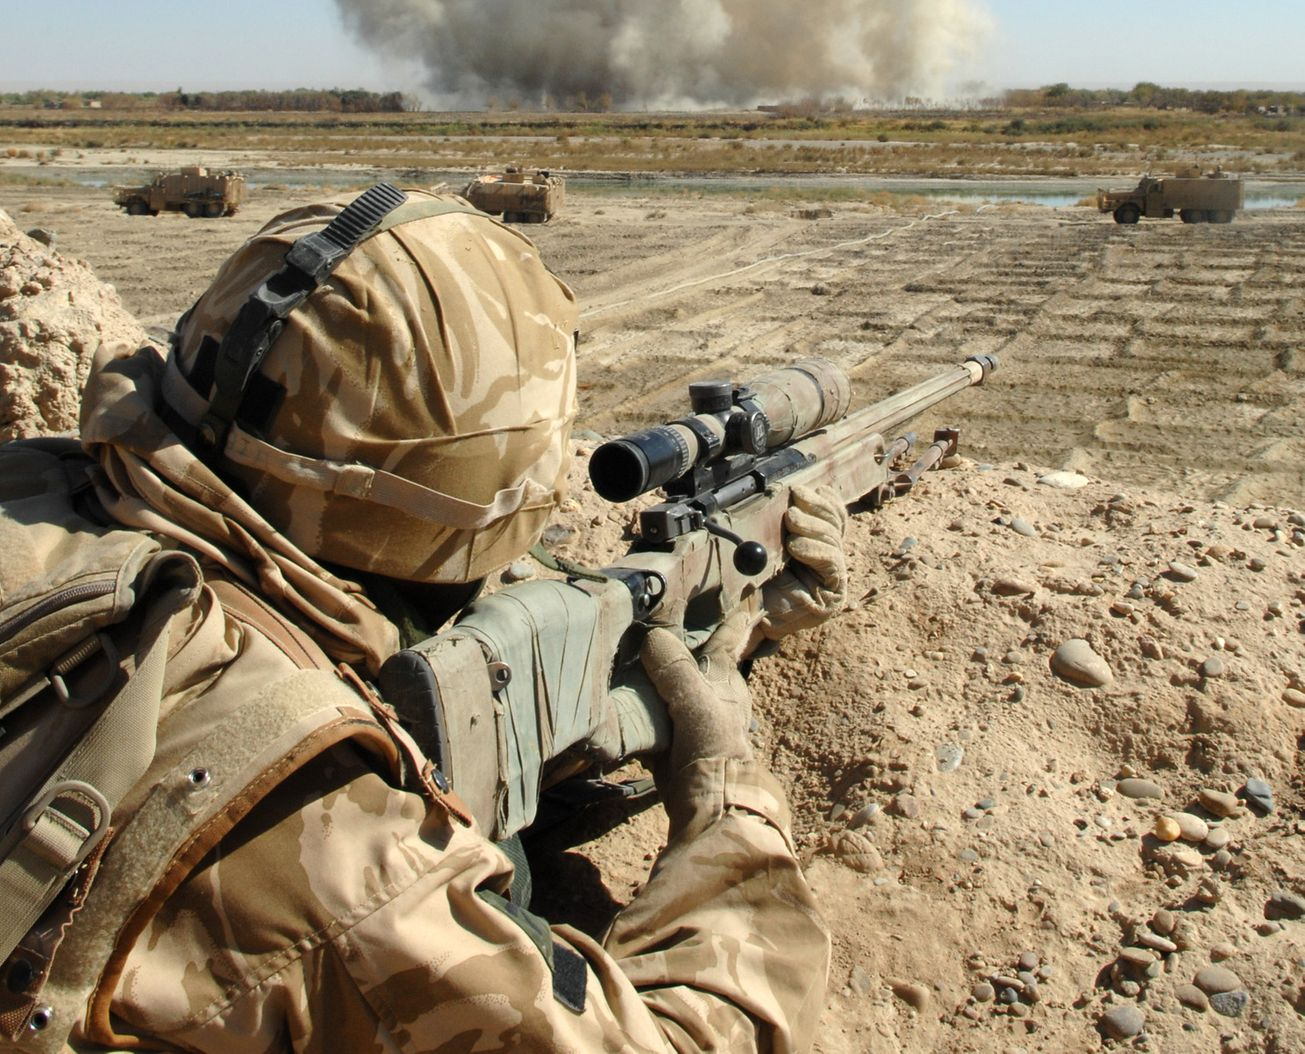 L115a3 The Best Sniper Rifle Today The National Interest